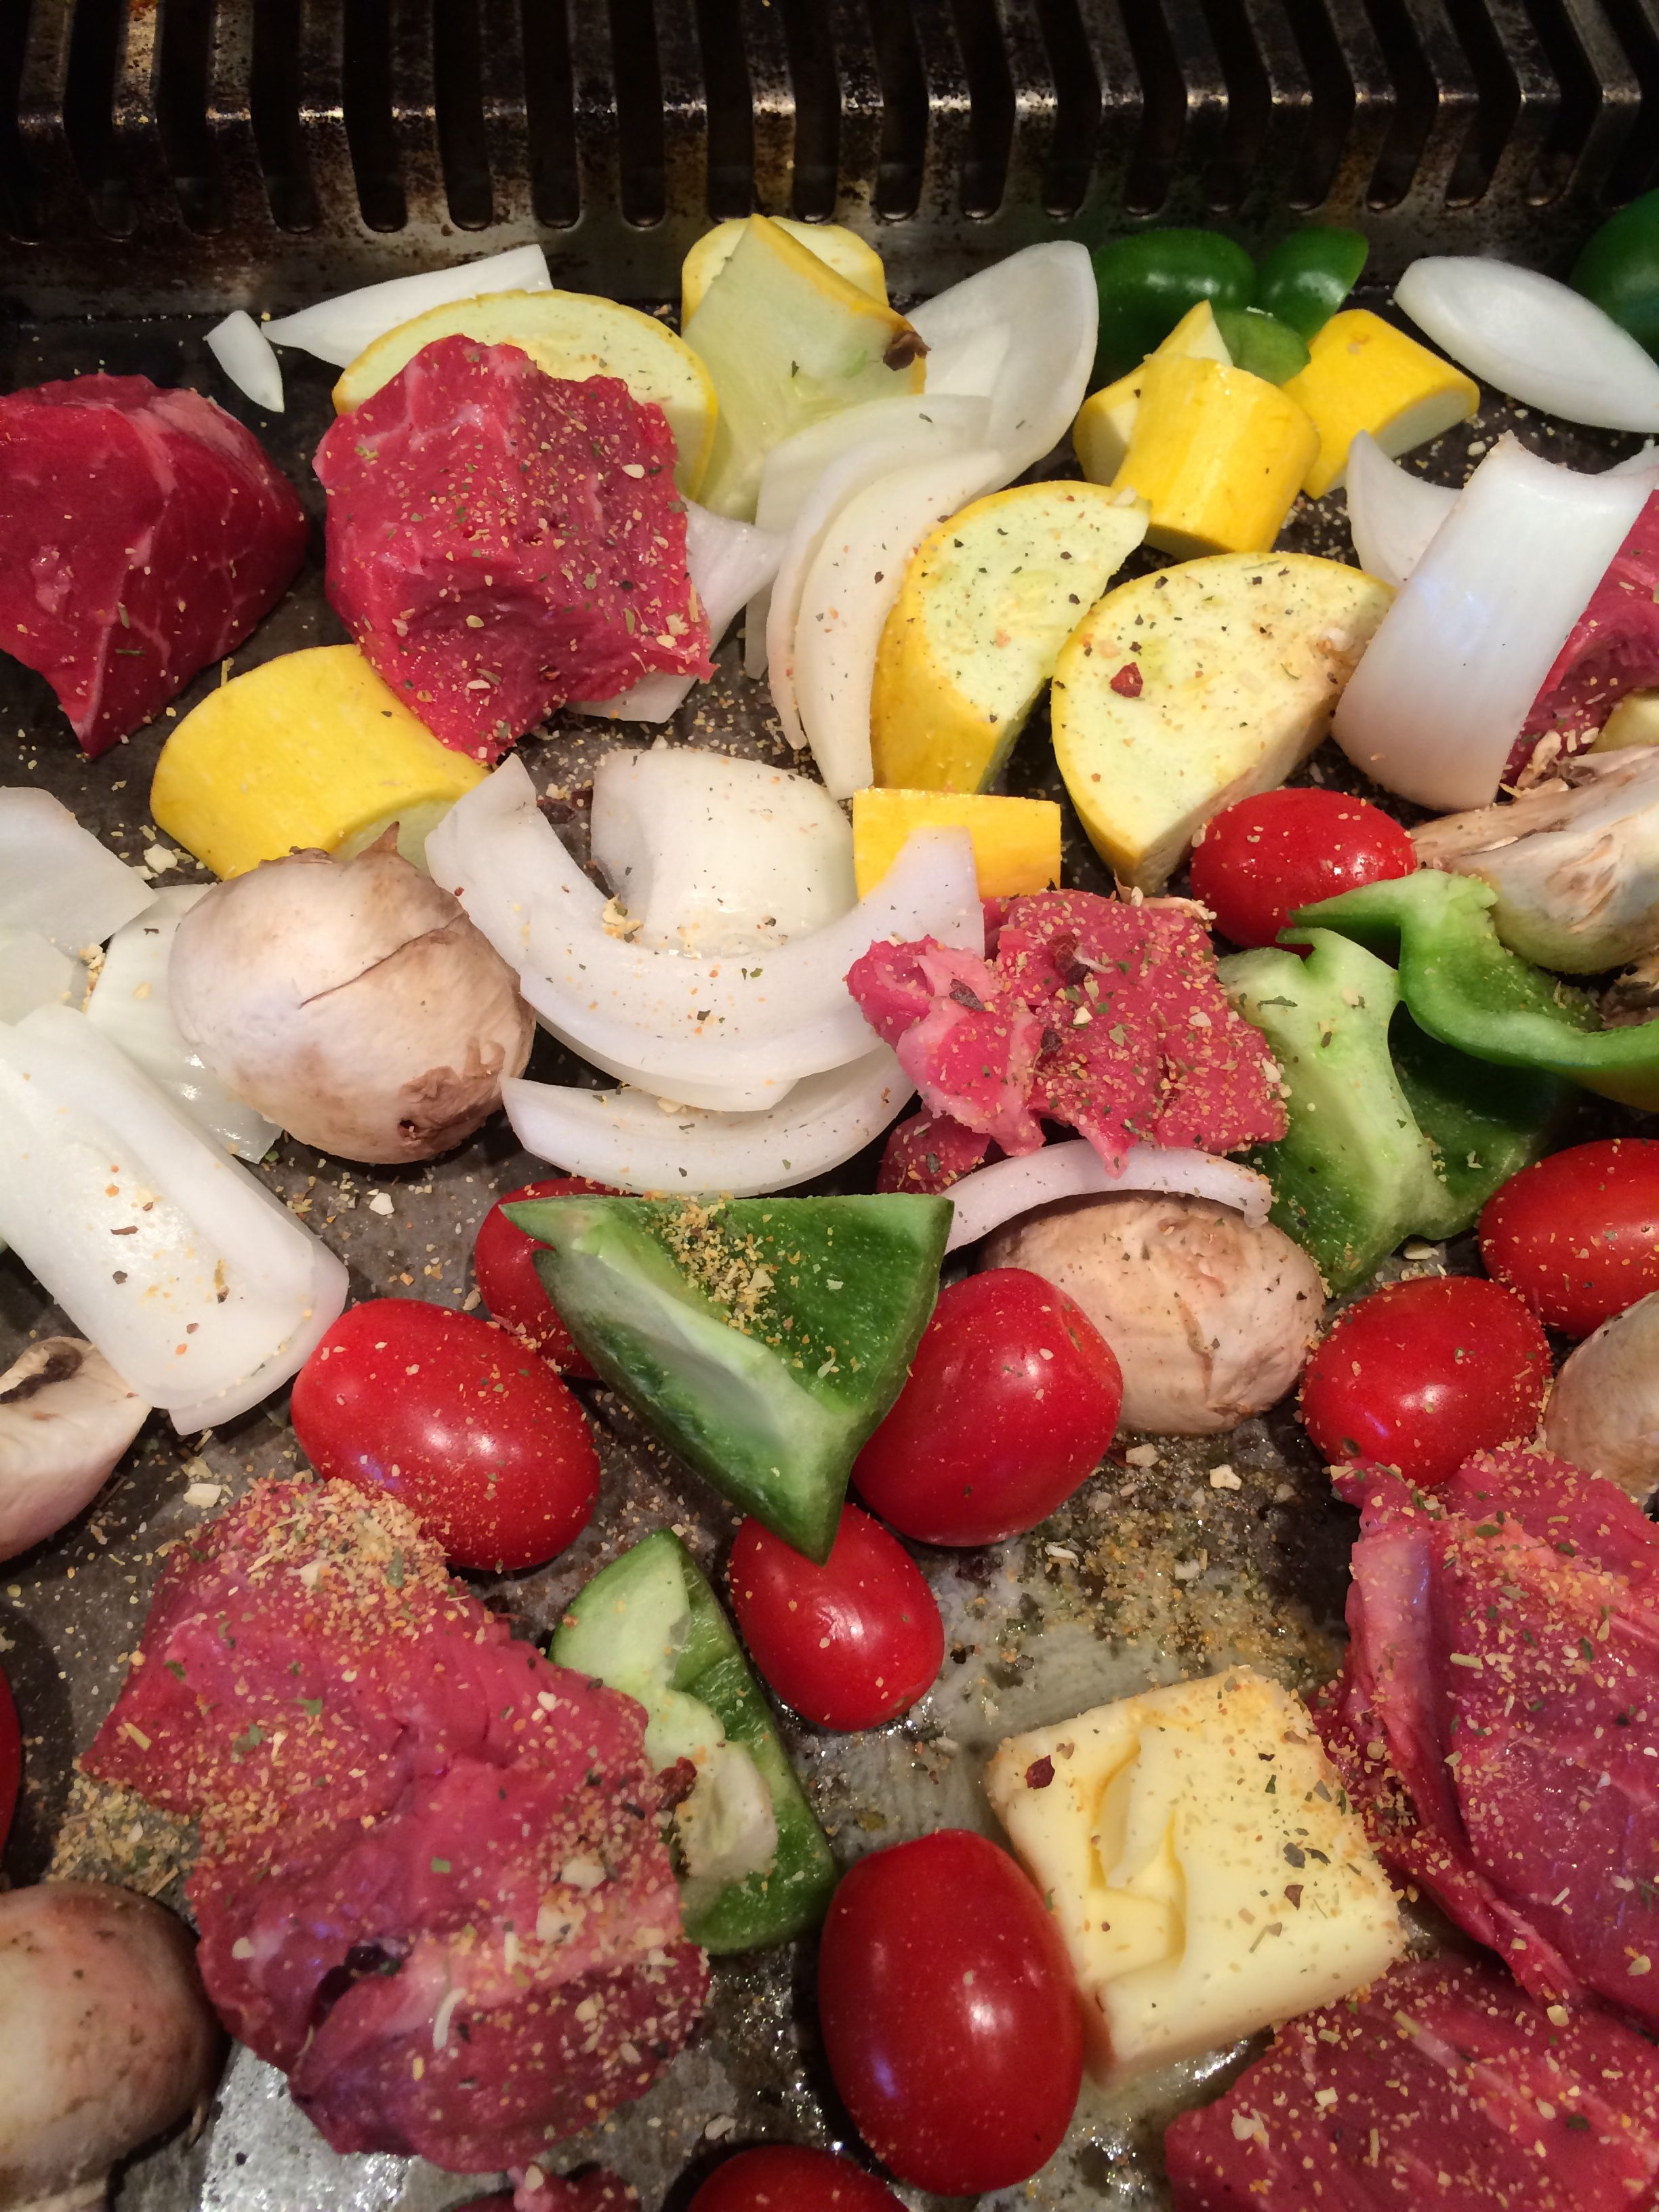 Great low carb meal Low carb meats